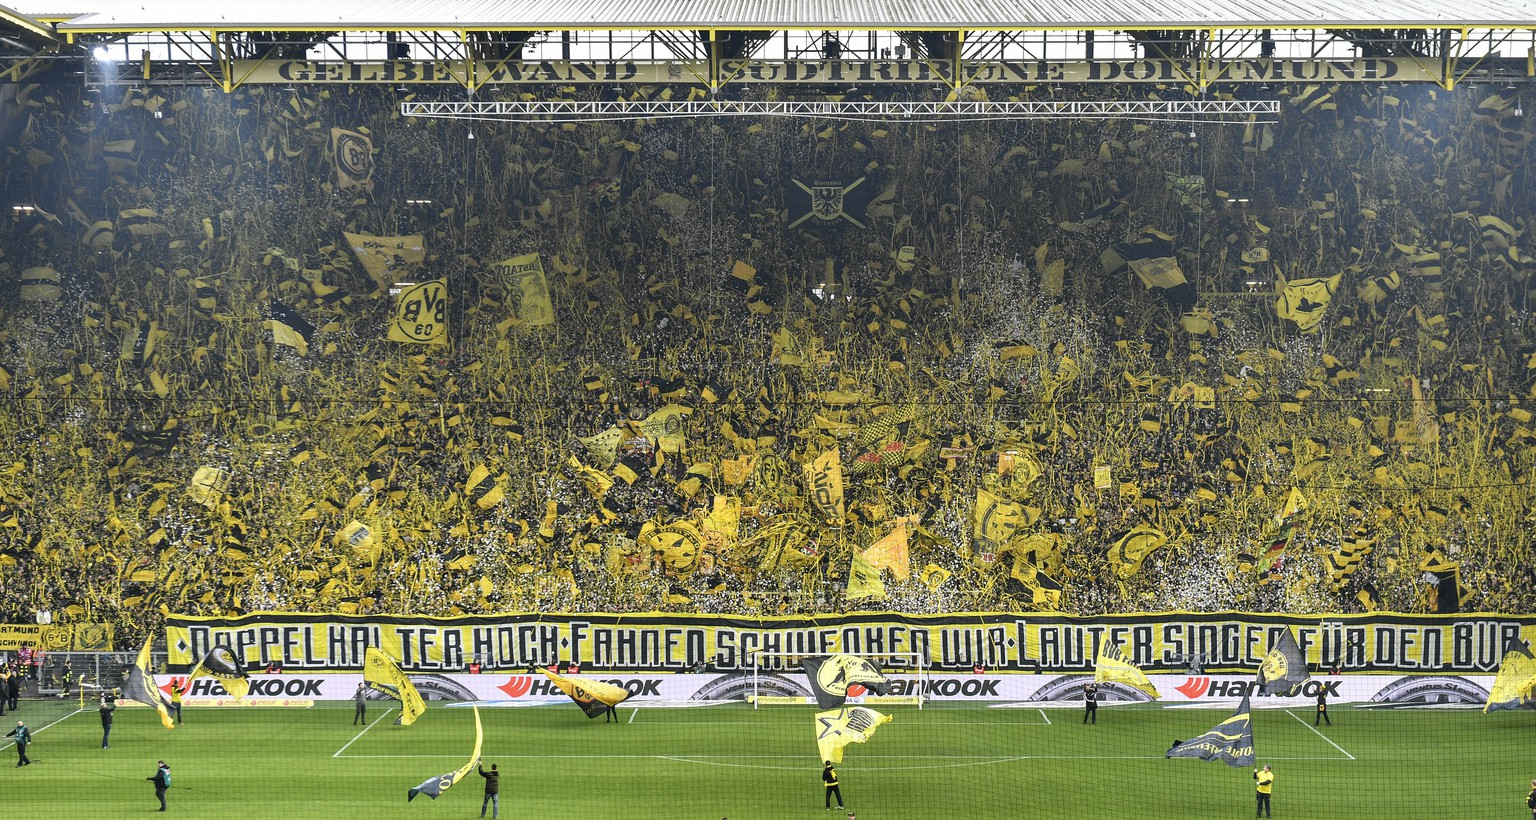 FILE - In this April 13, 2019 file photo, Borussia Dortmund's fans celebrate on the famous south tribune 'Gelbe Wand', the largest terrace for 24,454 standing spectators in European football, in the Signal Iduna Park stadium in Dortmund, Germany. Just days after narrowly losing out in the Bundesliga to Bayern Munich, Dortmund signed three internationals to better challenge the Bavarian powerhouse next season. Germany's Julian Brandt and Nico Schulz have joined from Bayer Leverkusen and Hoffenheim, respectively, while Belgium forward Thorgan Hazard has switched from Borussia Moenchengladbach. (AP Photo/Martin Meissner)